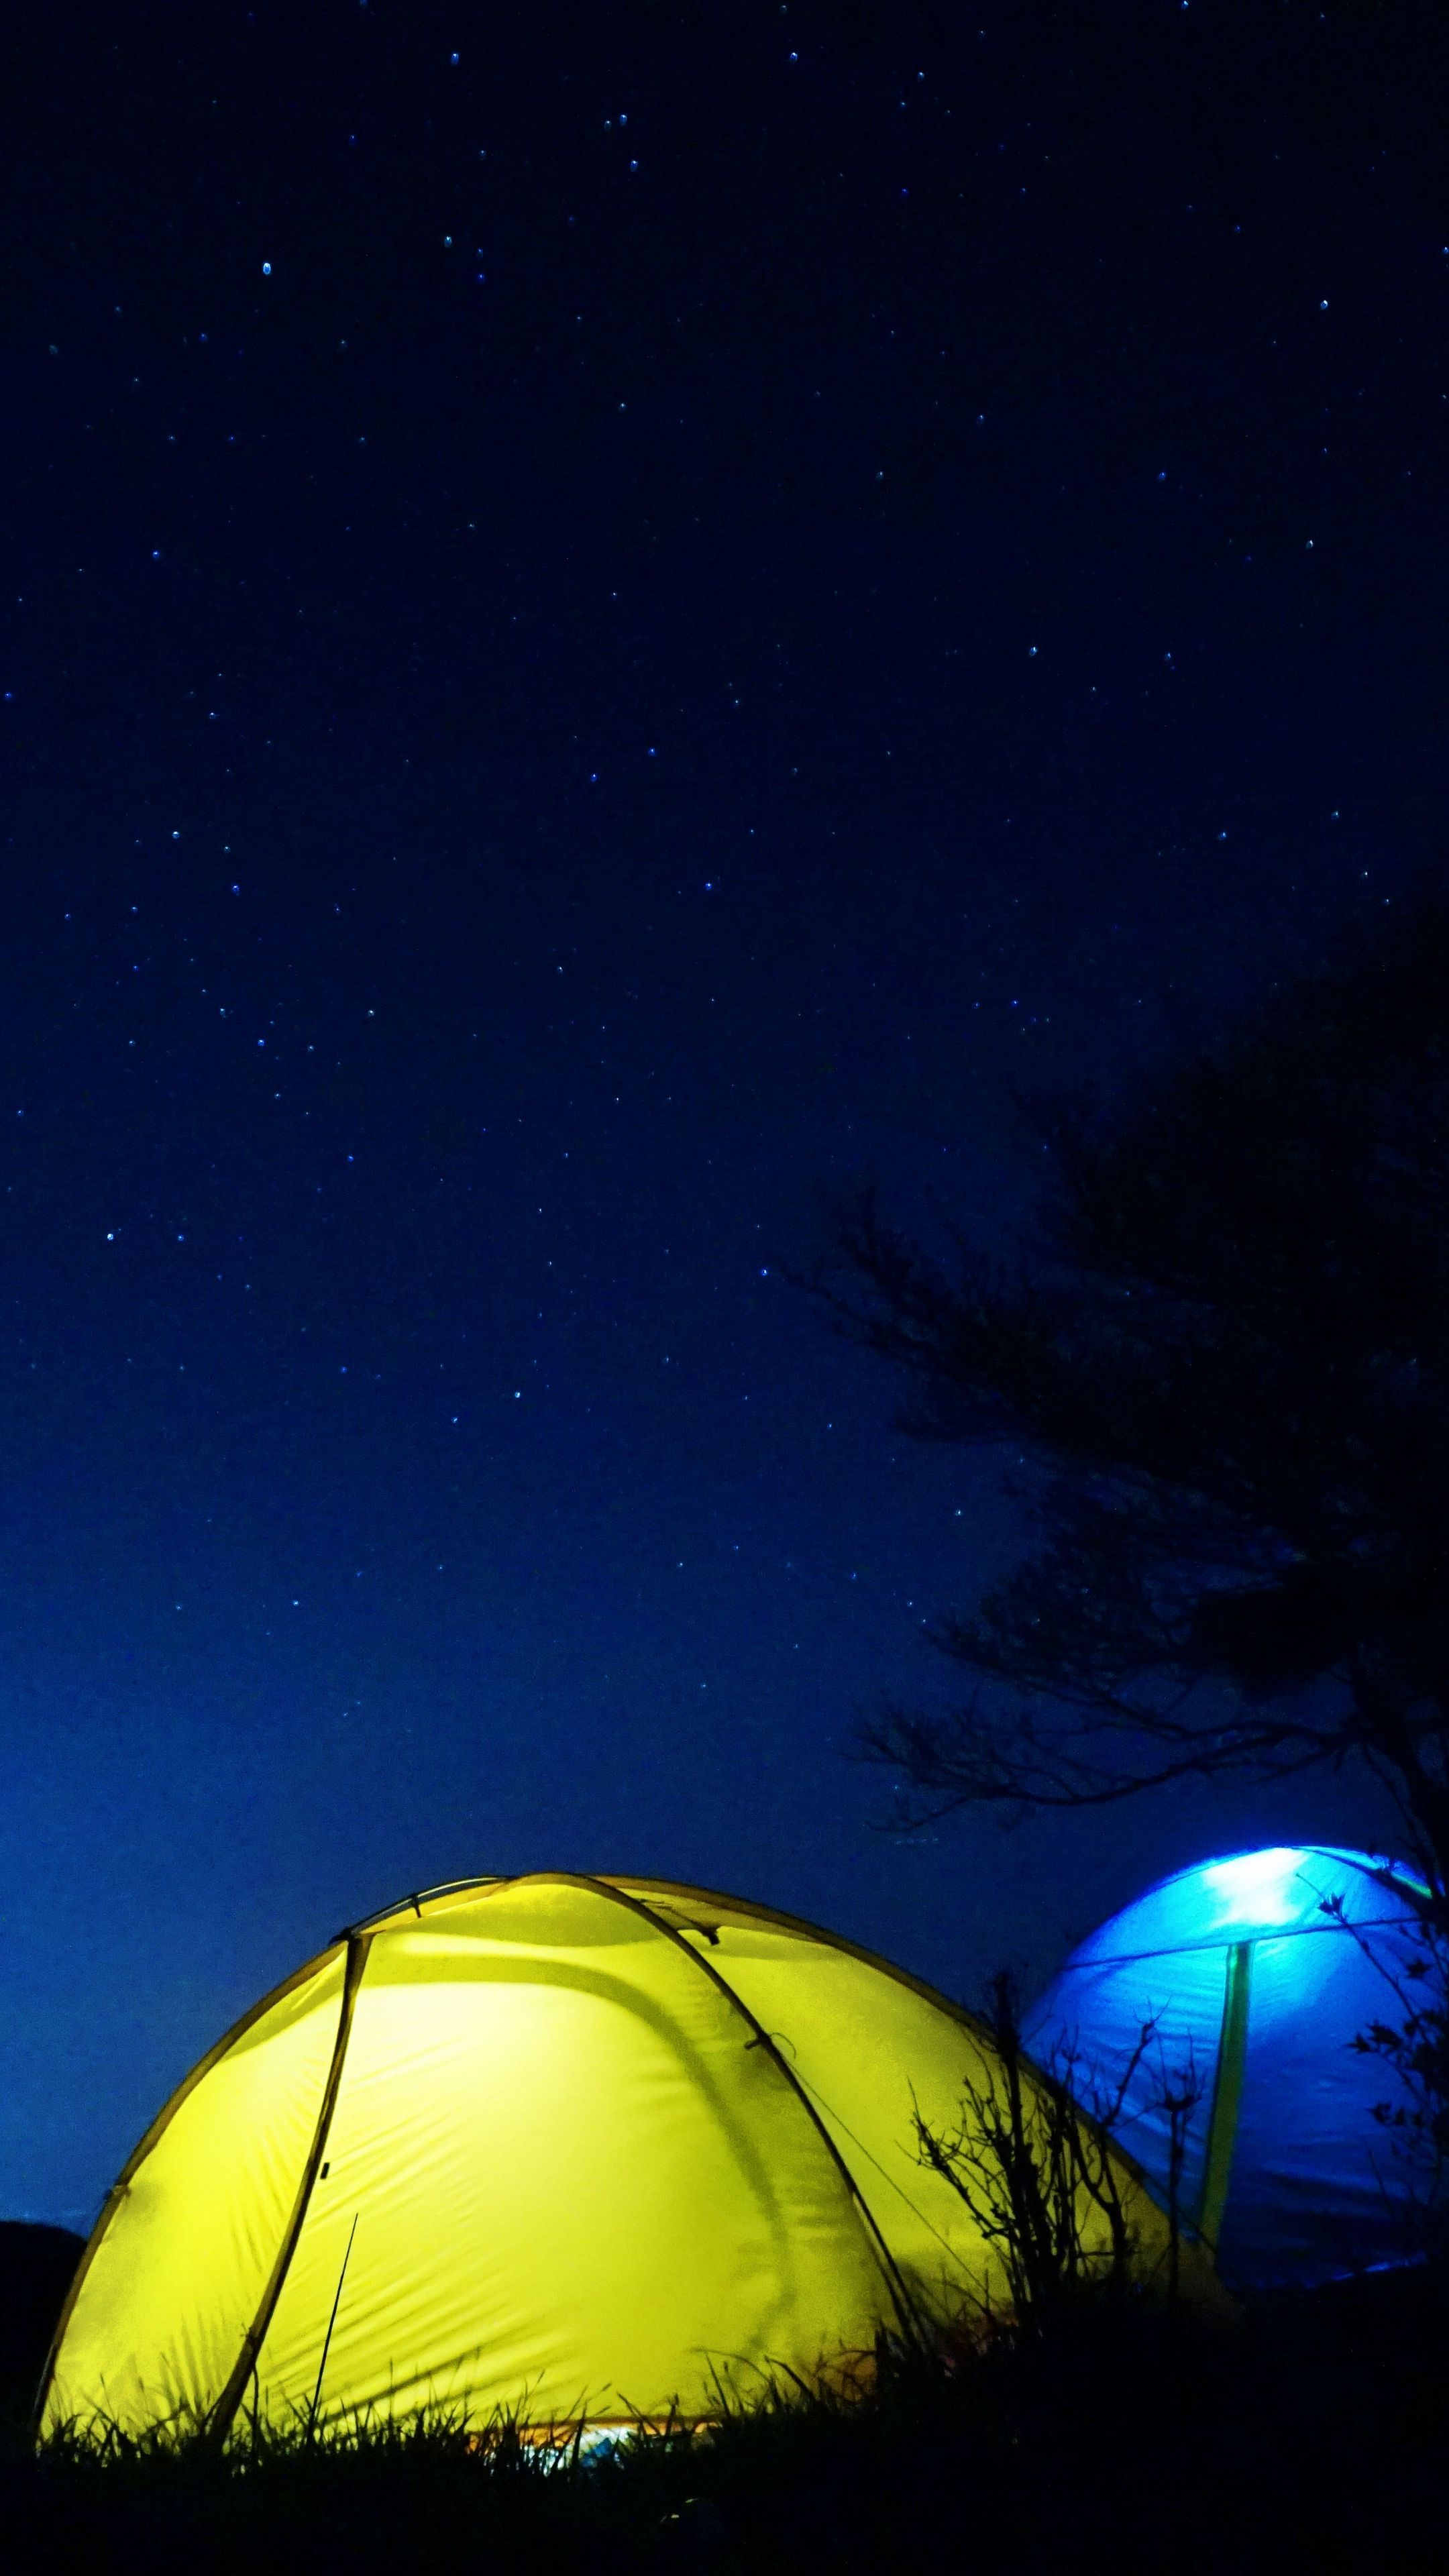 Nature tent night starry sky wallpapers hd 4k